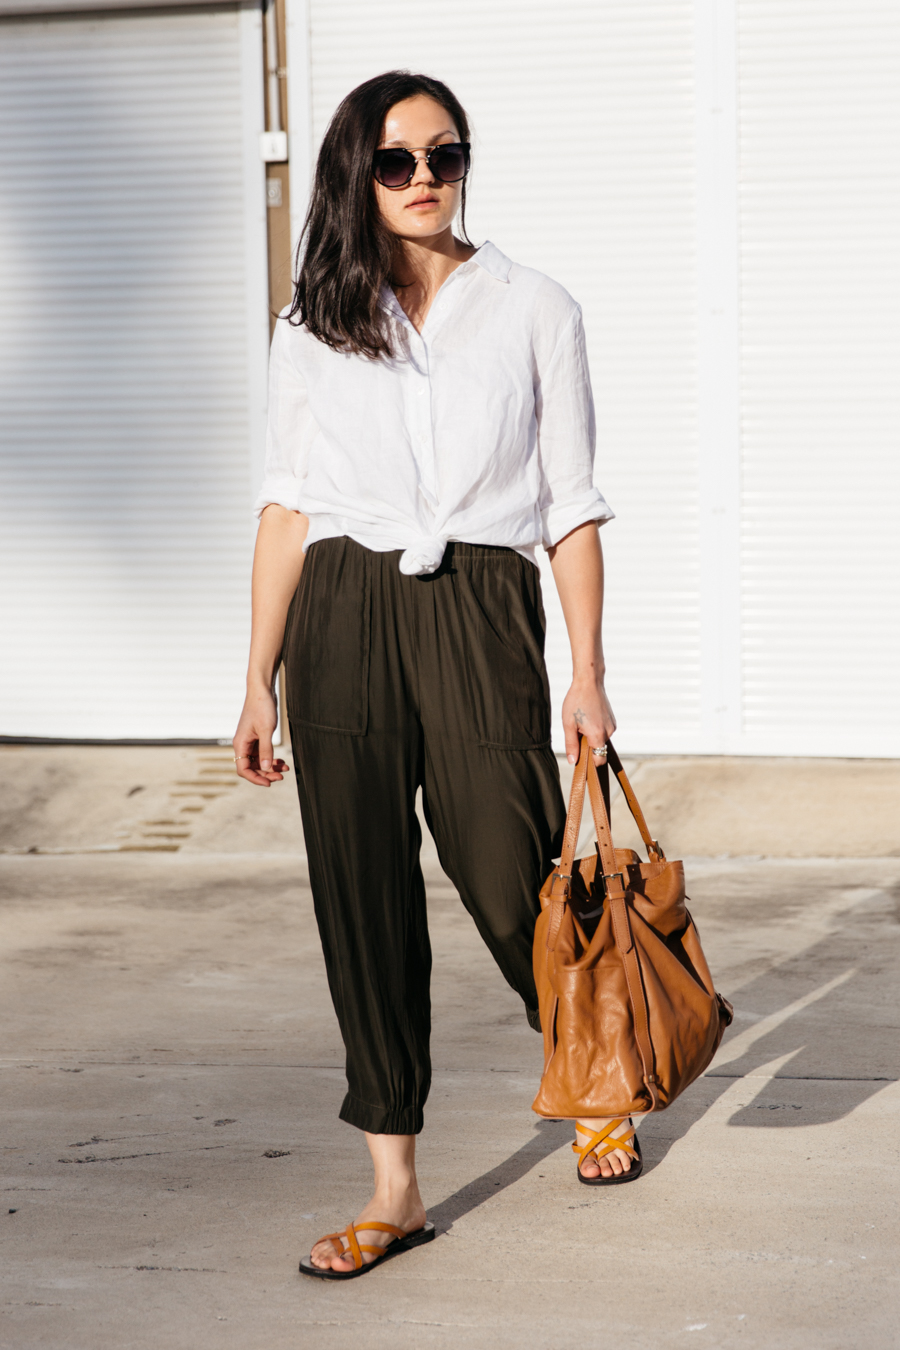 Silk pants in army green by Layer'd.